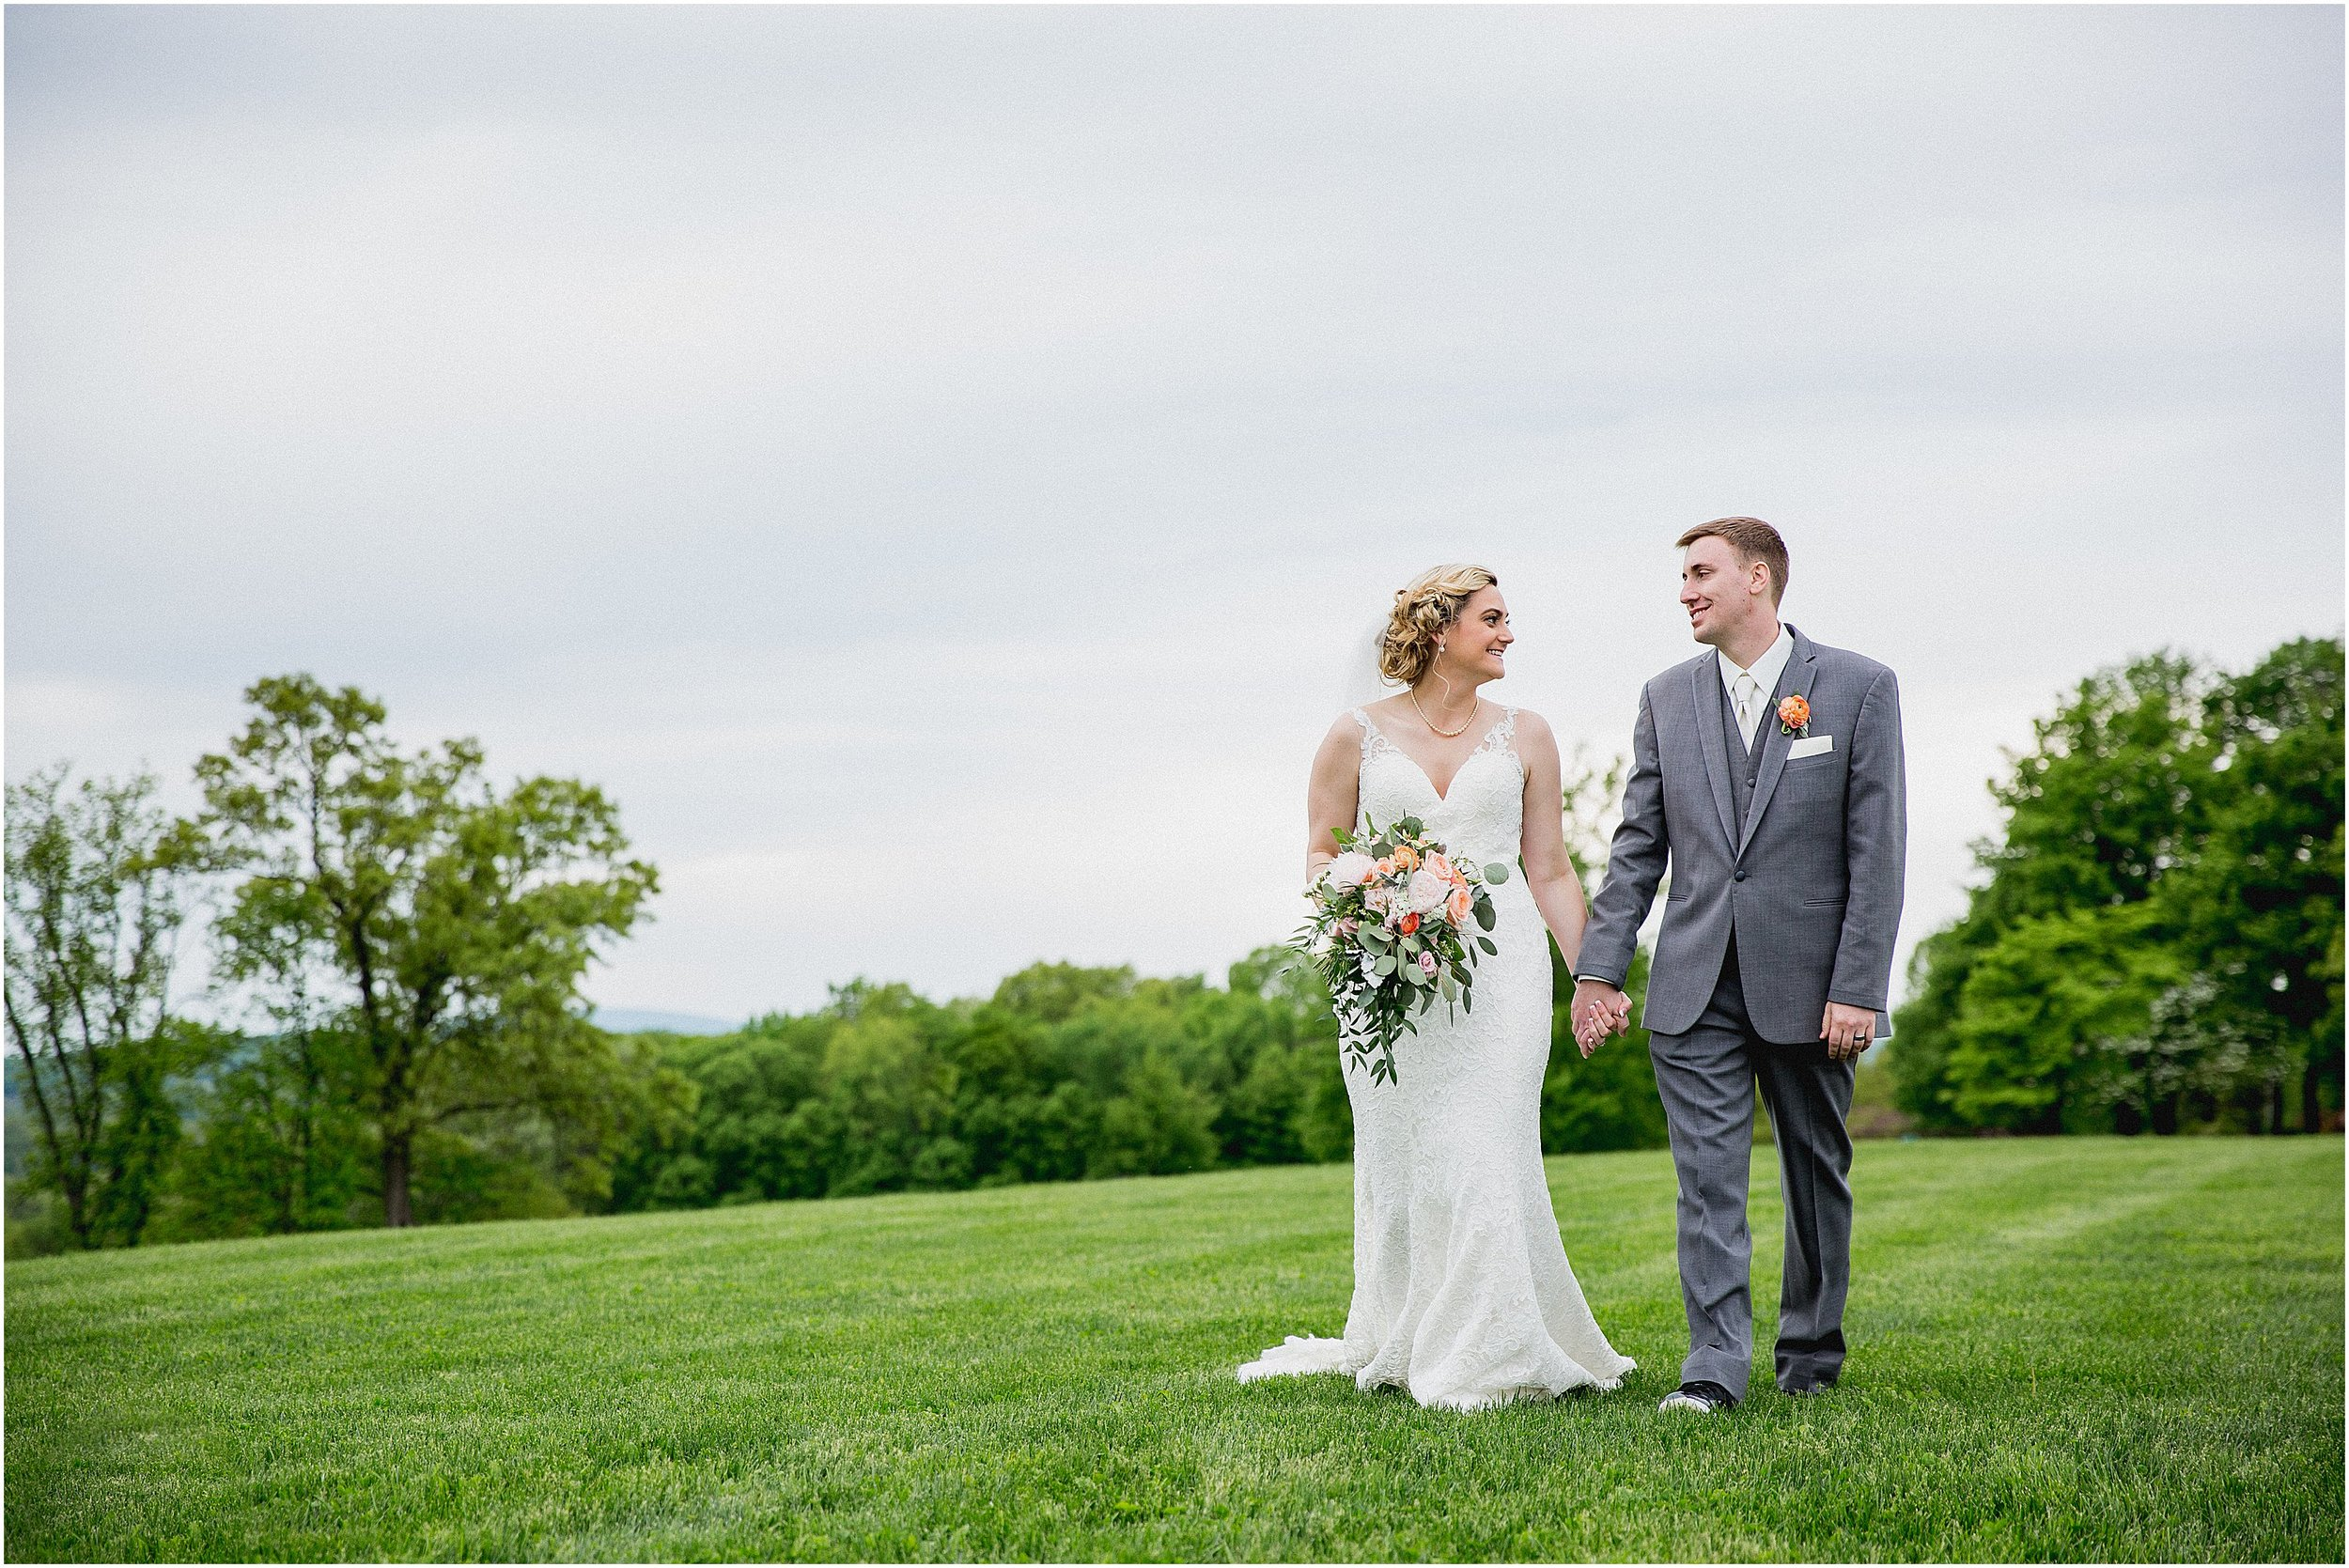 Whispering_Oaks_Wedding_Photographer_0480.jpg